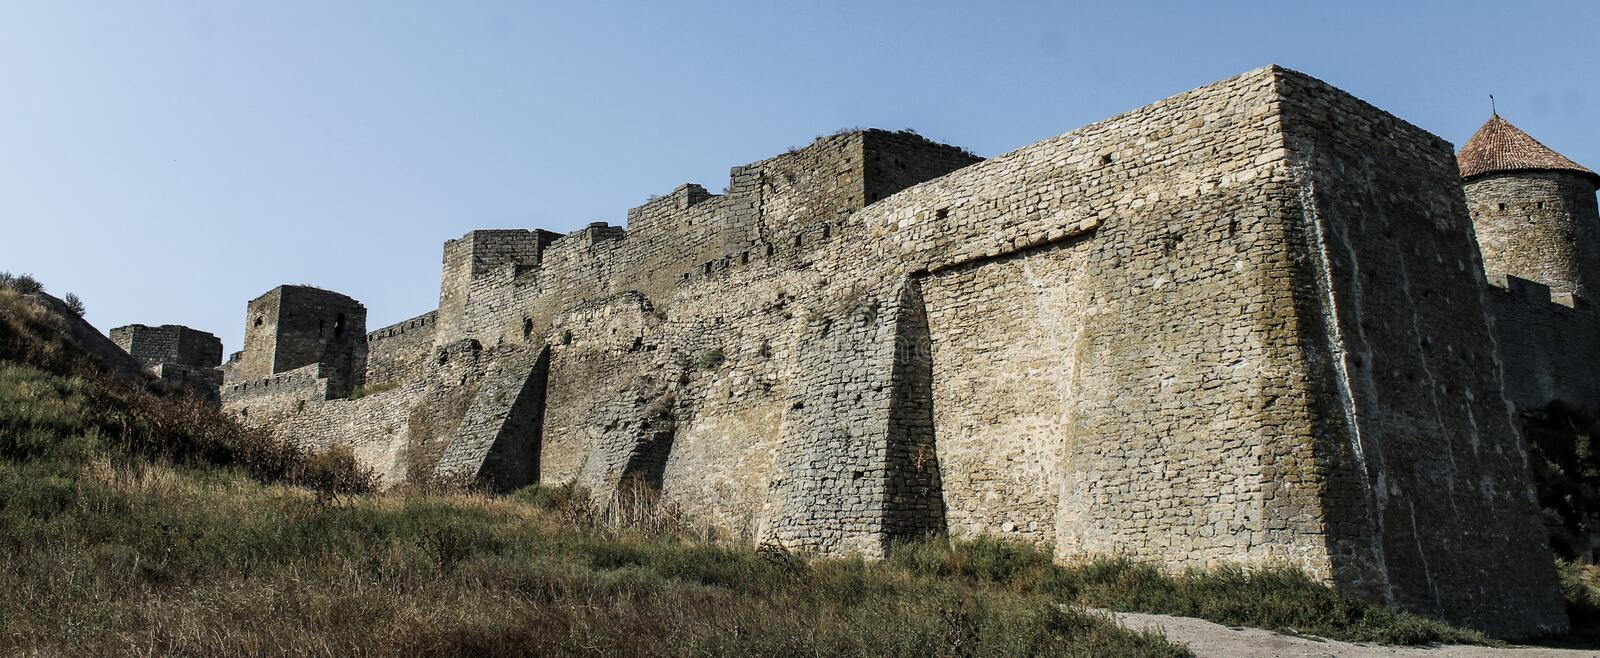 Fortress Ackerman. On the shore of the black sea, antique city of the thirty royalty free stock photography